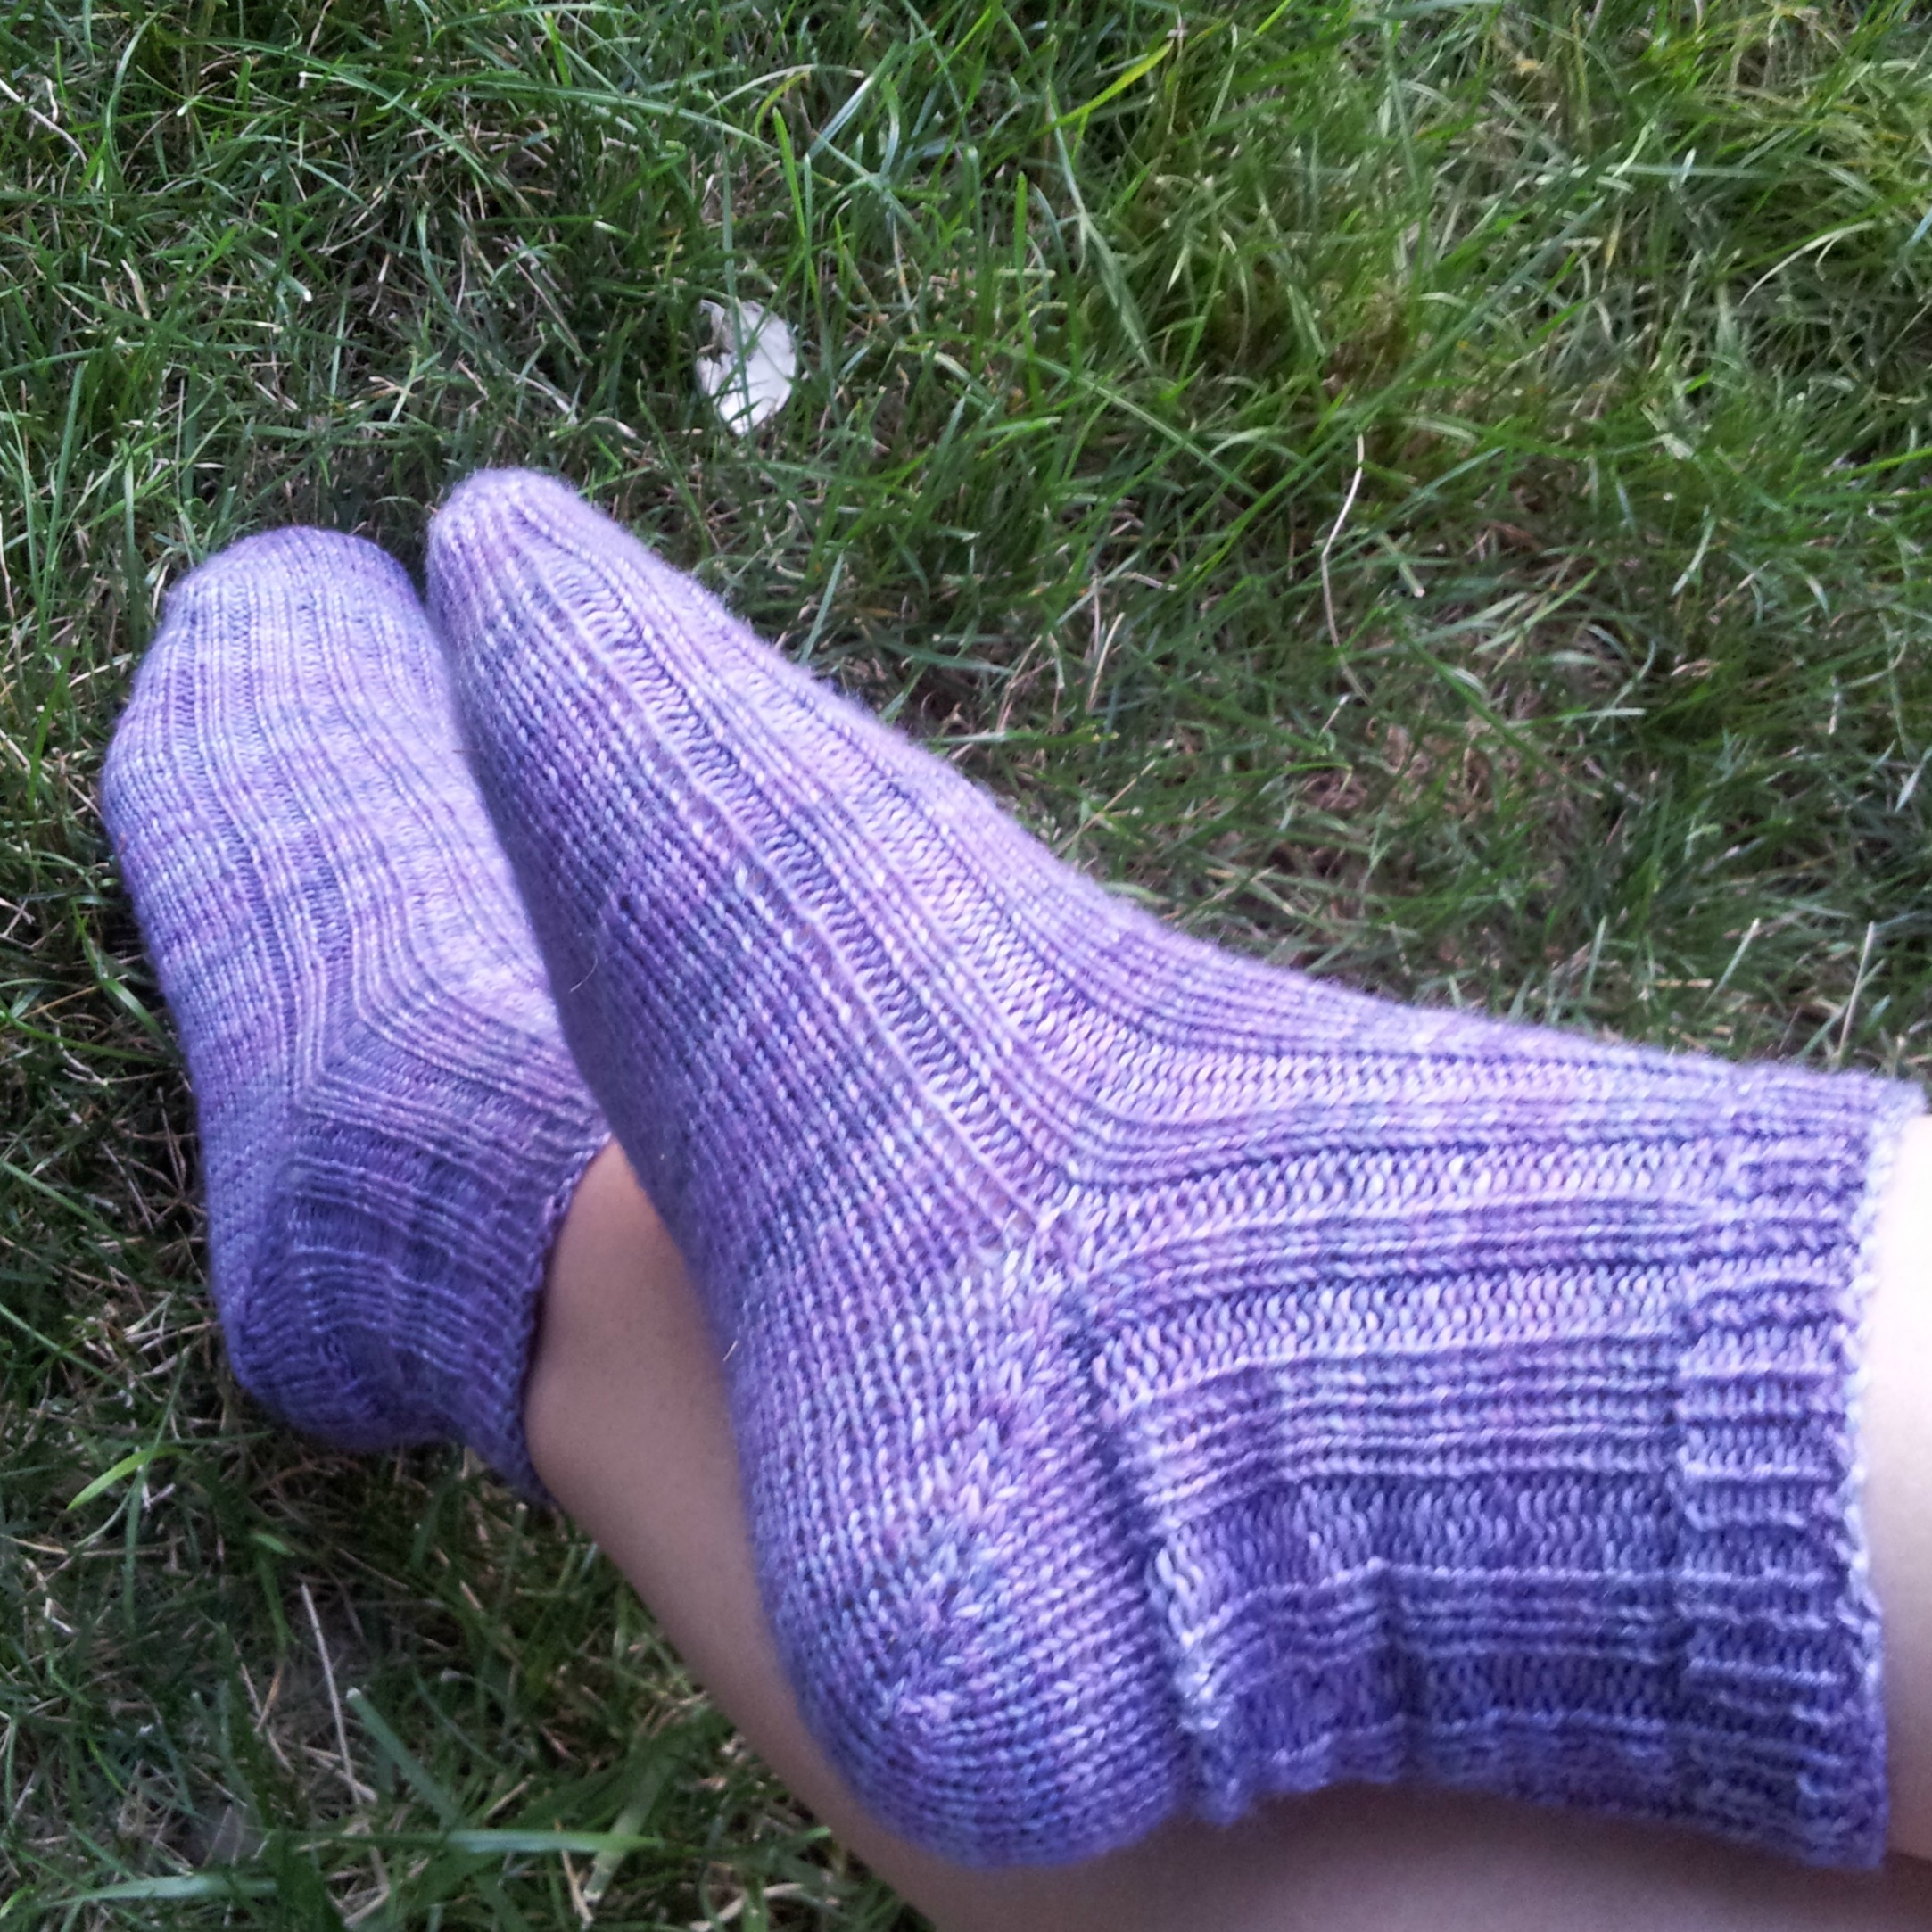 The start of my sock journey started with a pair of purple socks.